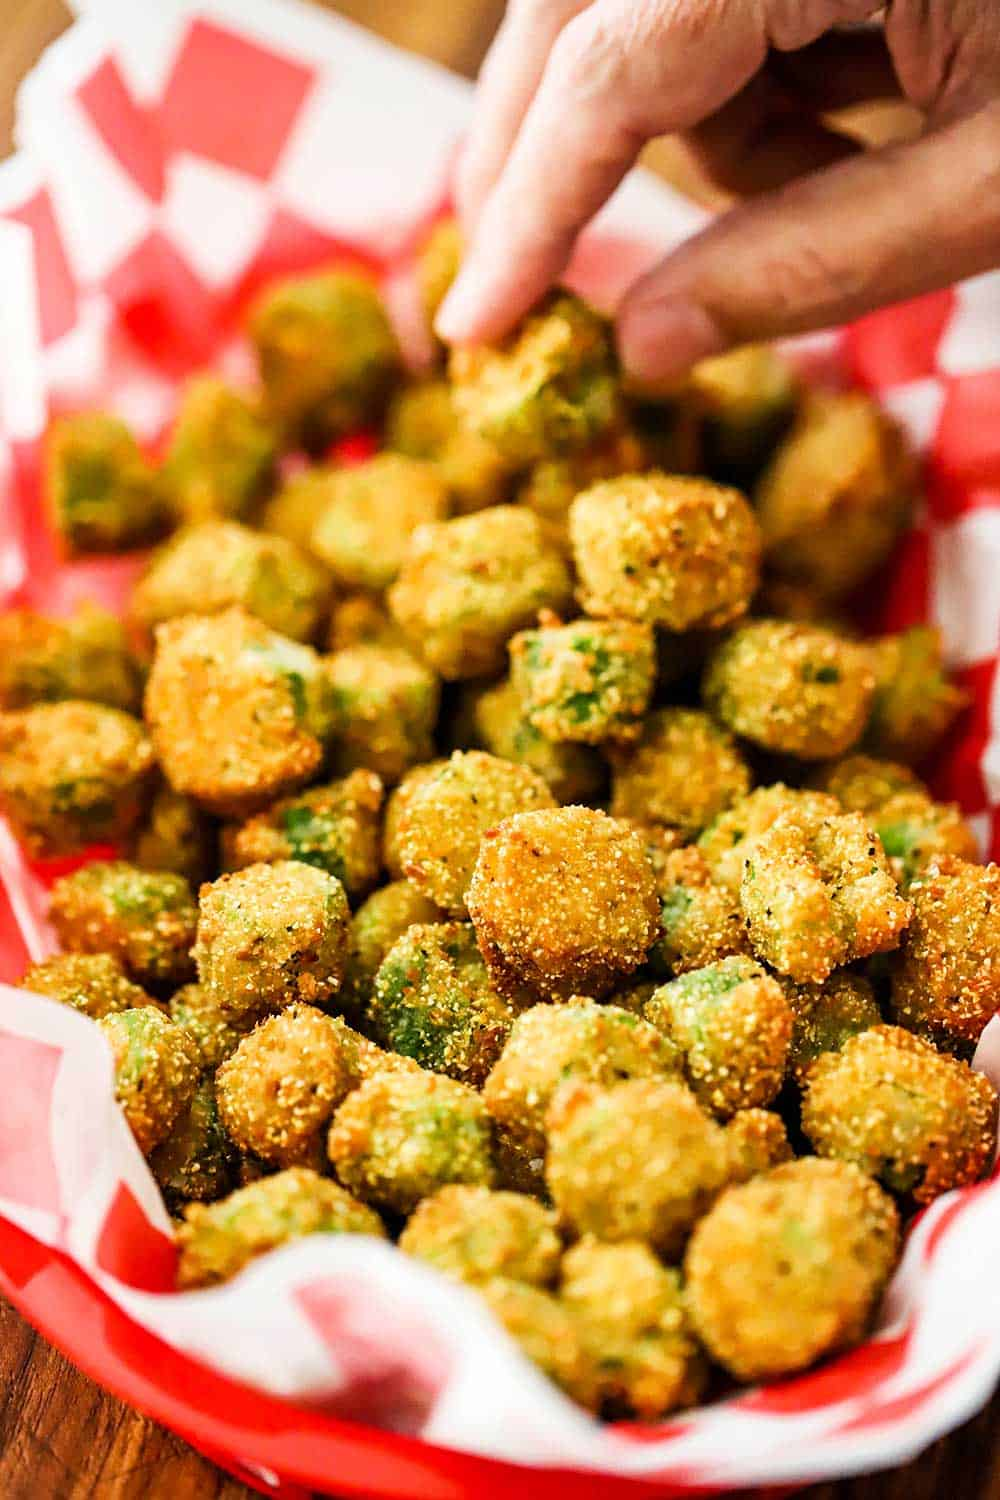 A person reaching into a basket lined with red checkered paper and filled with fried okra.